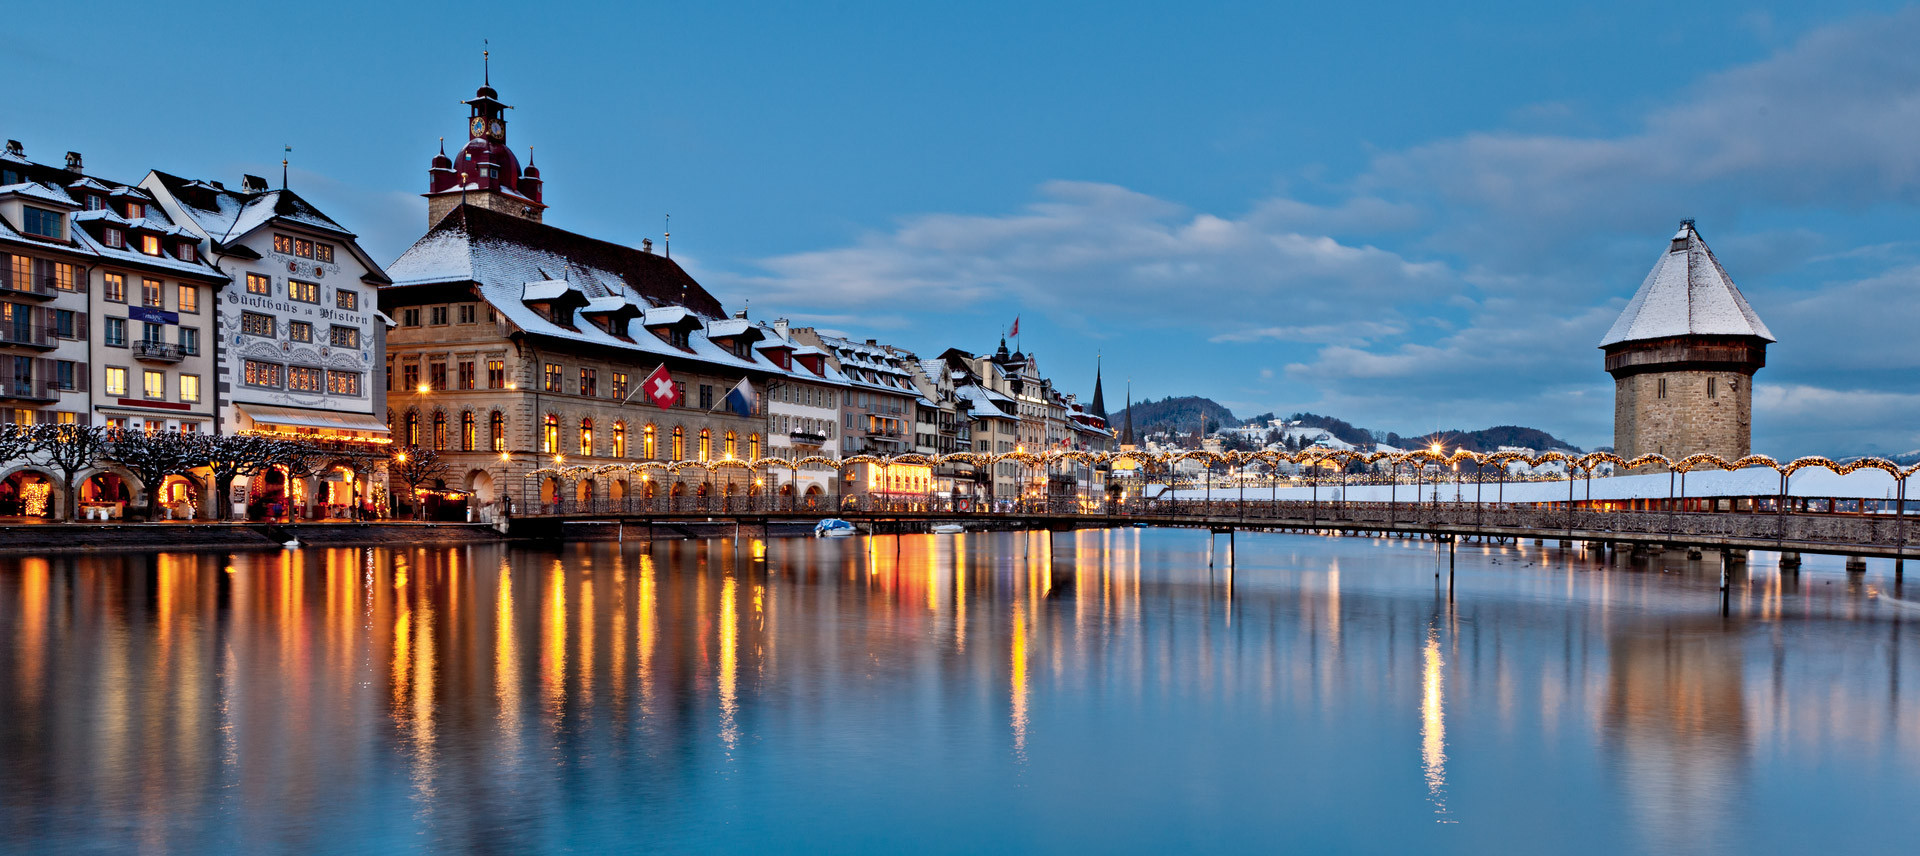 Lucerne will host the next edition of the Winter Universiade in January 2021 ©FISU